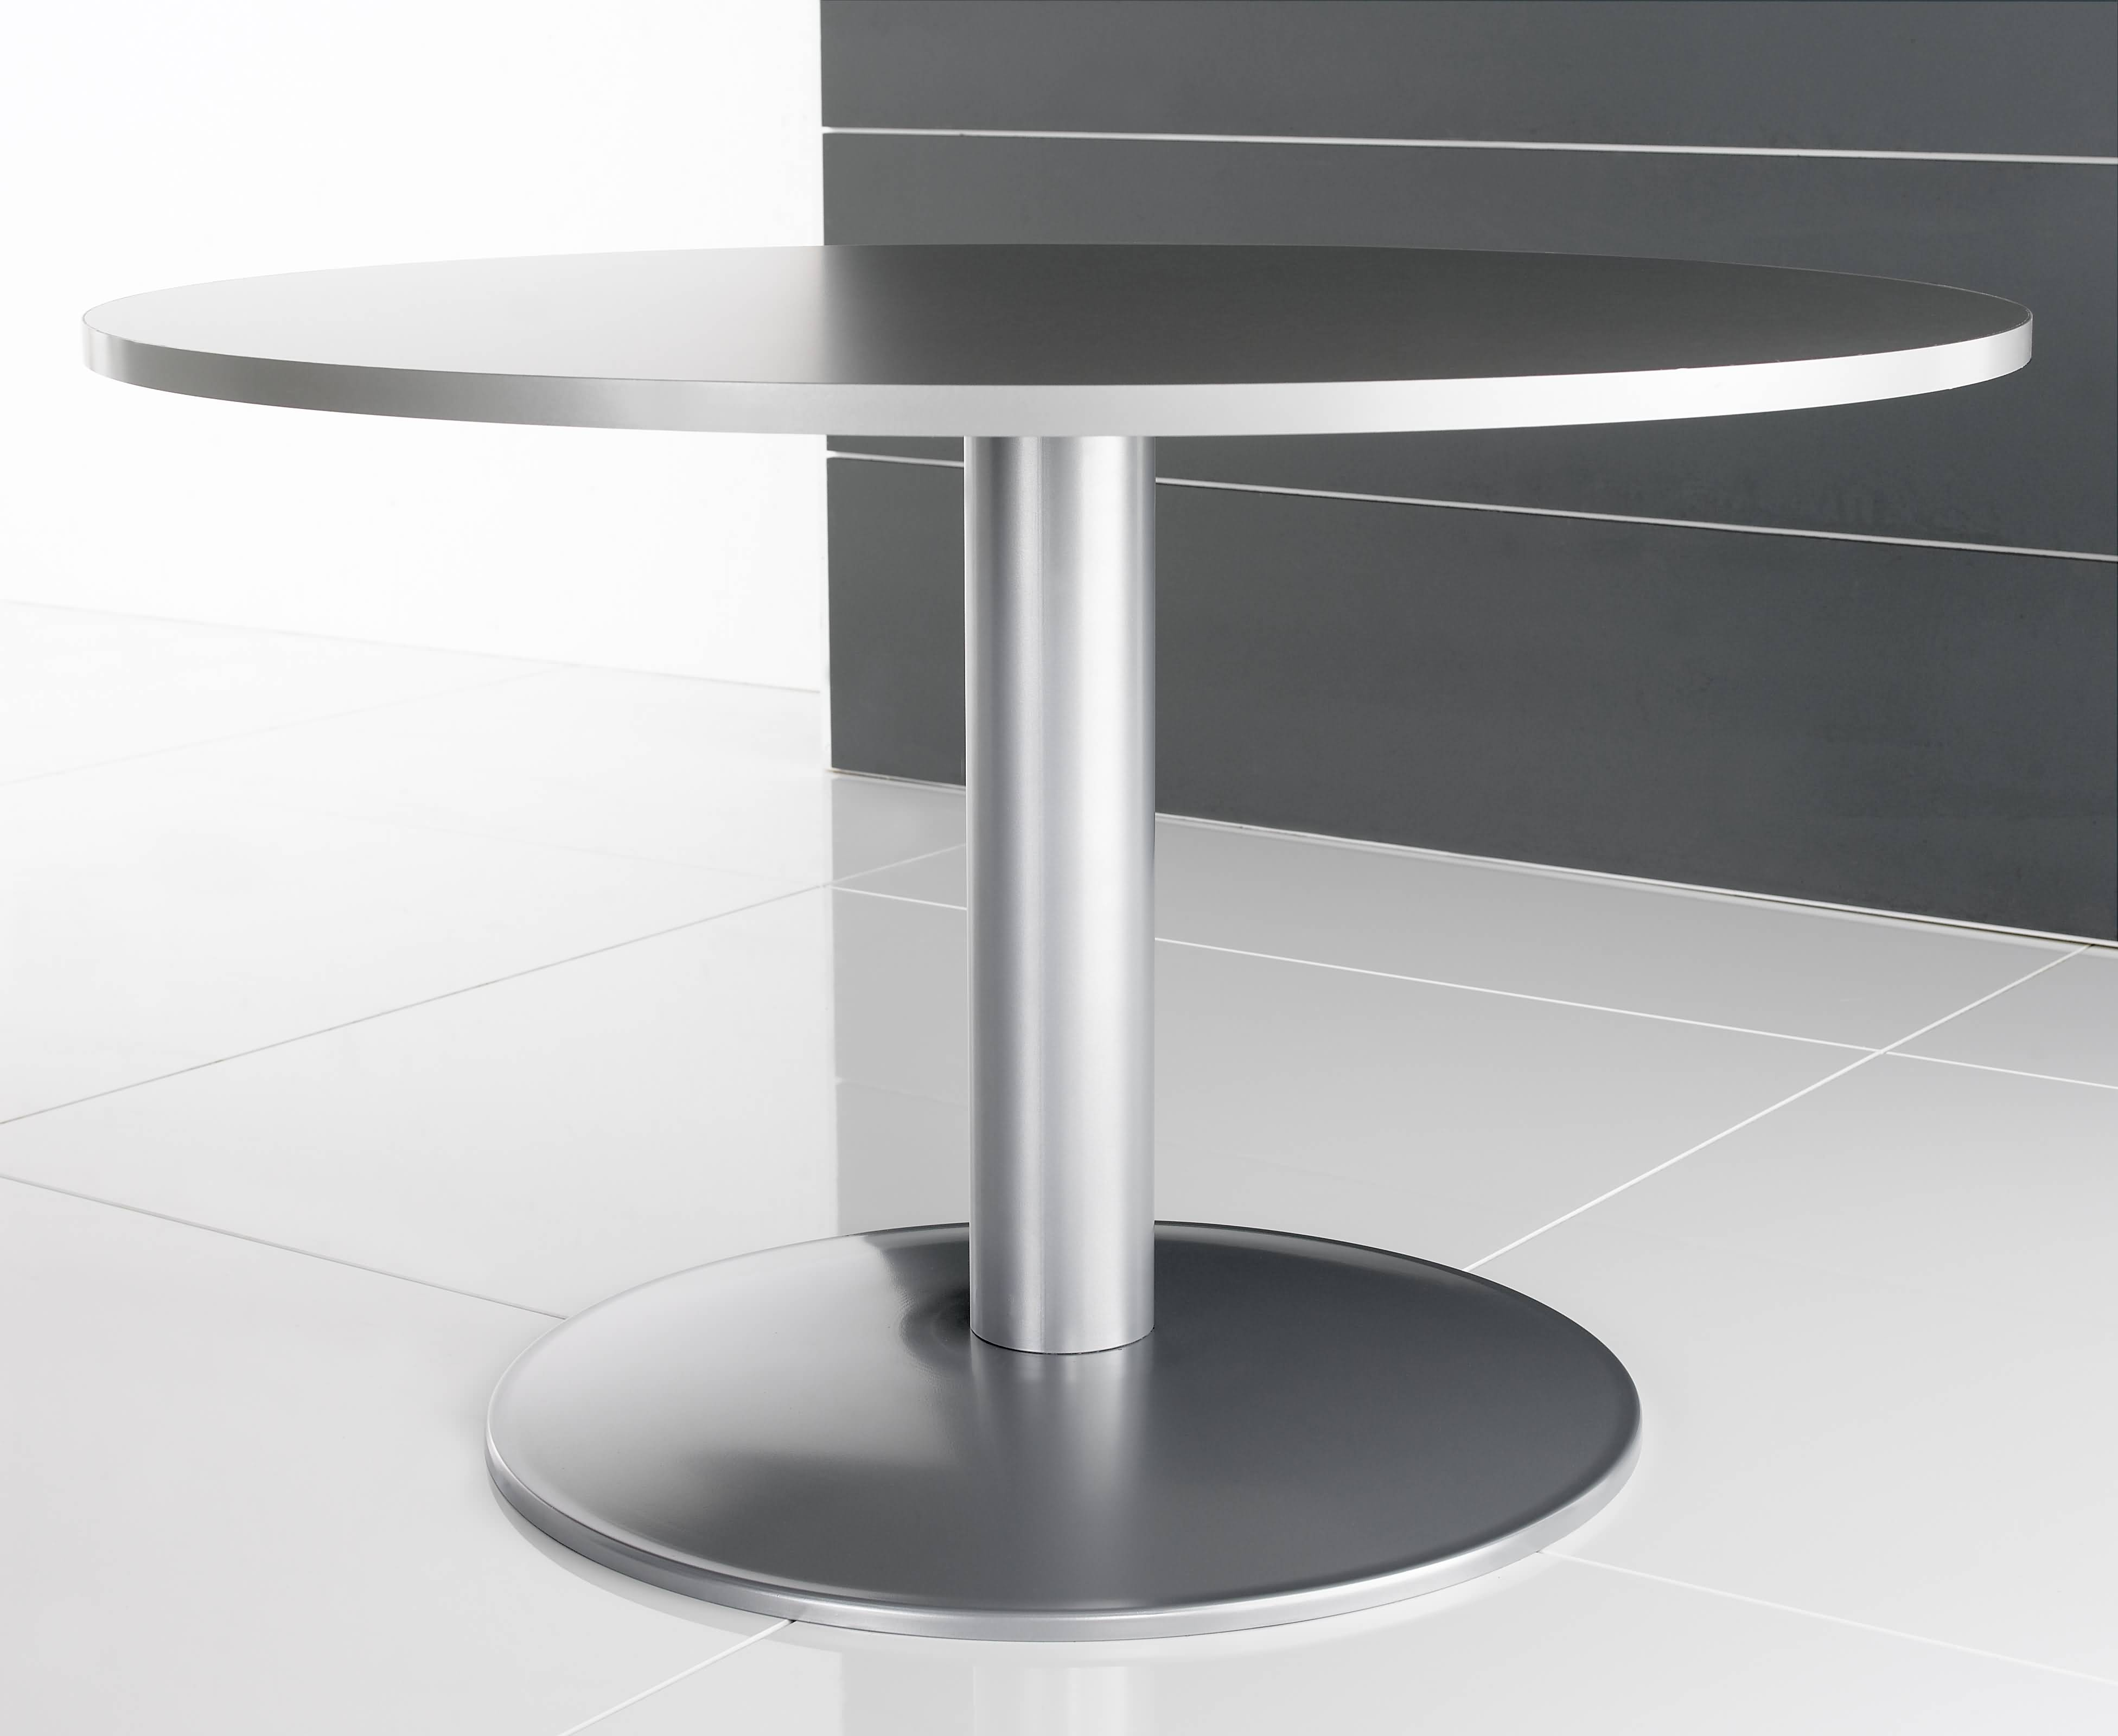 HK stainless steel trumpet base low height tables